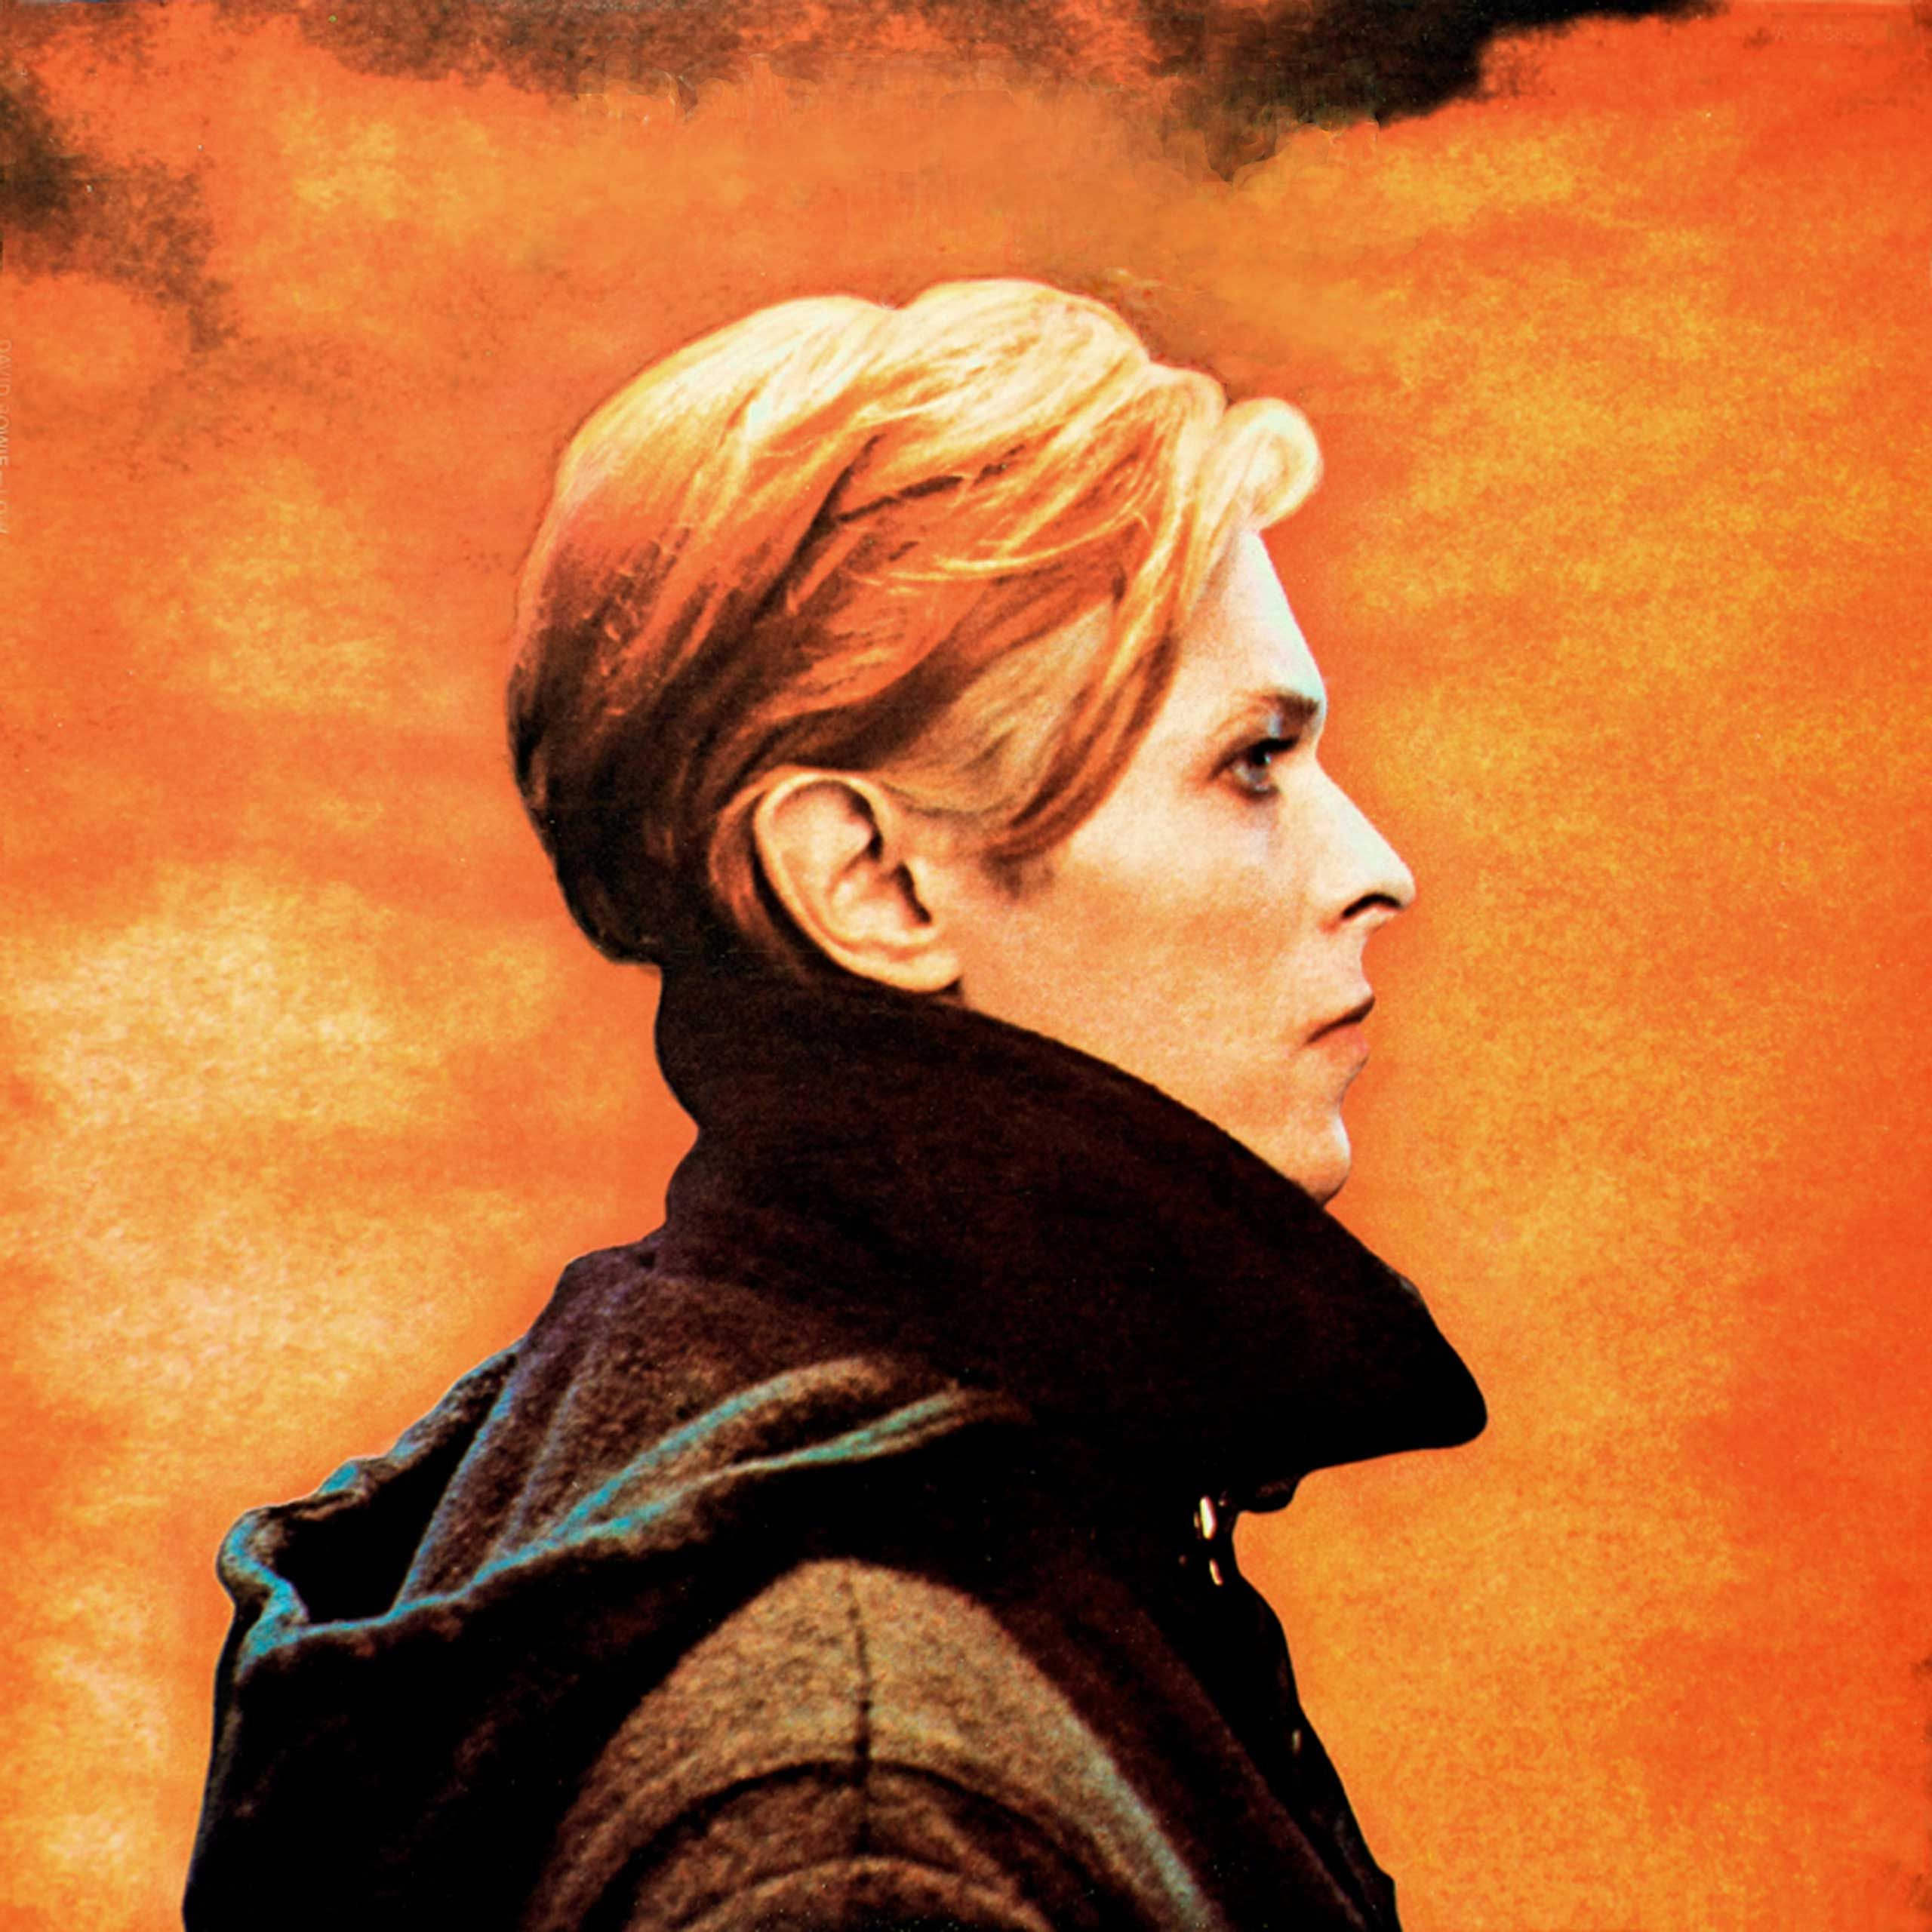 """David Bowie, 1975,  while making the film """"The Man Who Fell to Earth (1976). The picture is the album cover for LOW (1977)."""